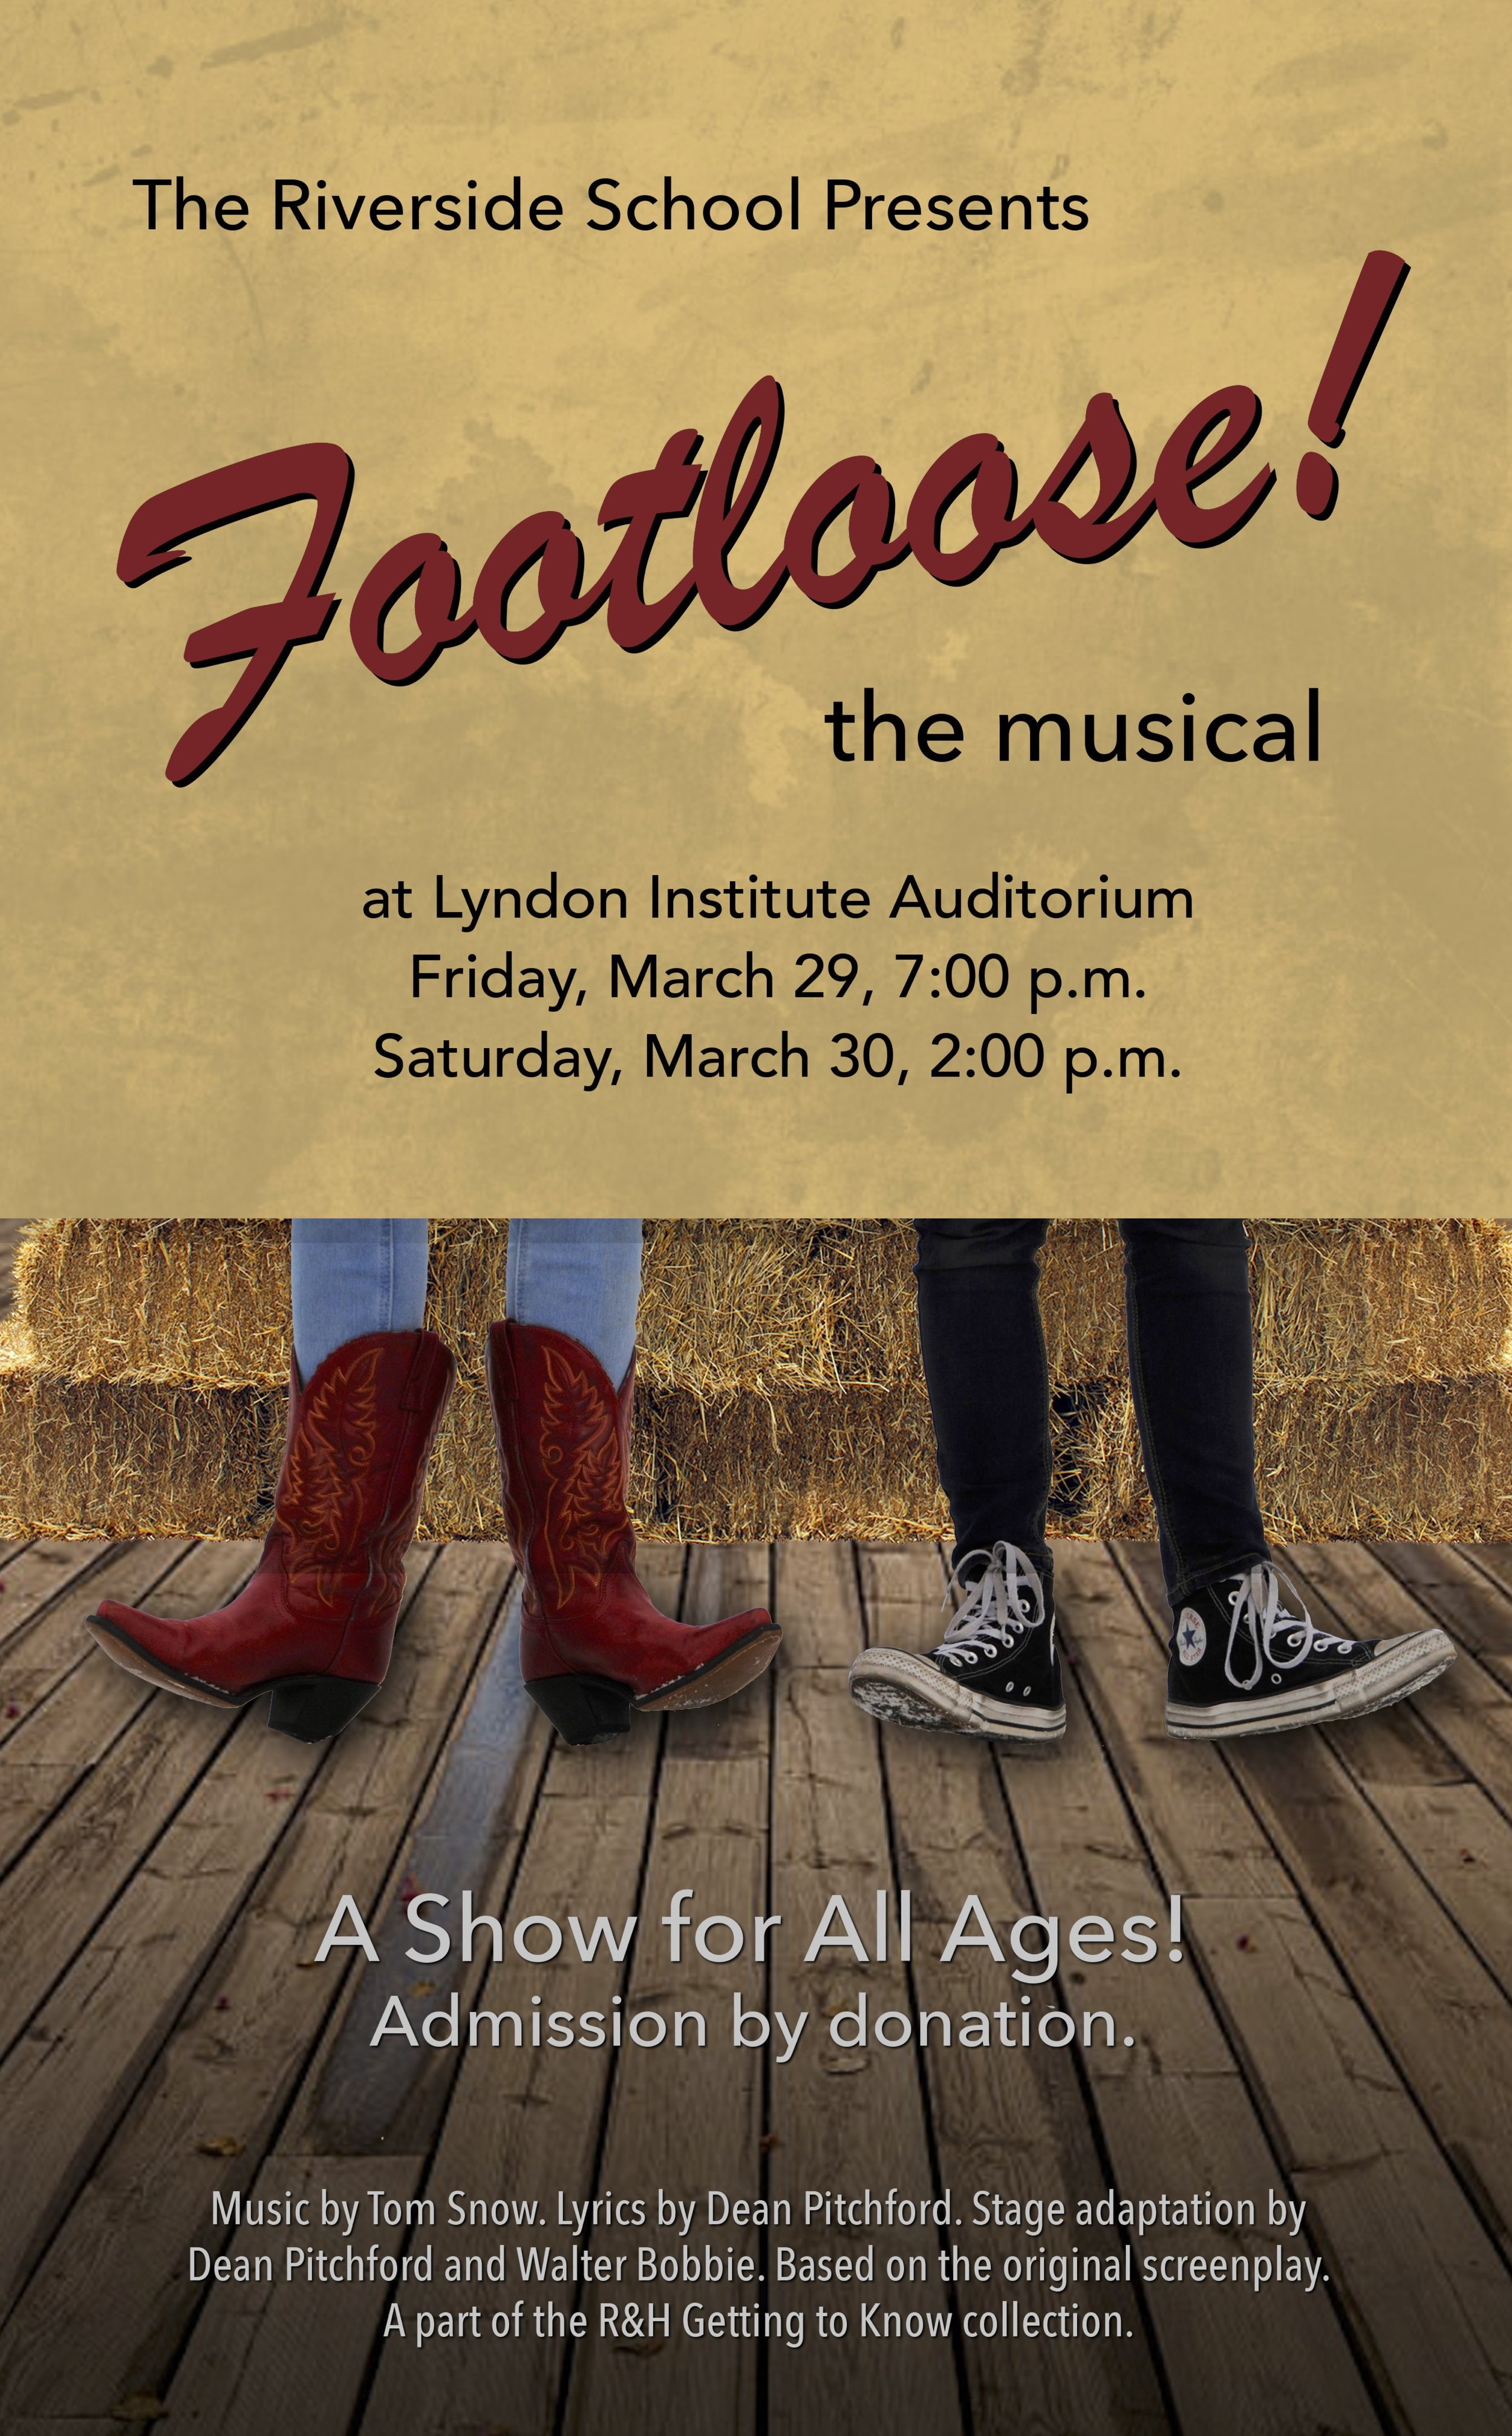 footloose-poster (1).jpg